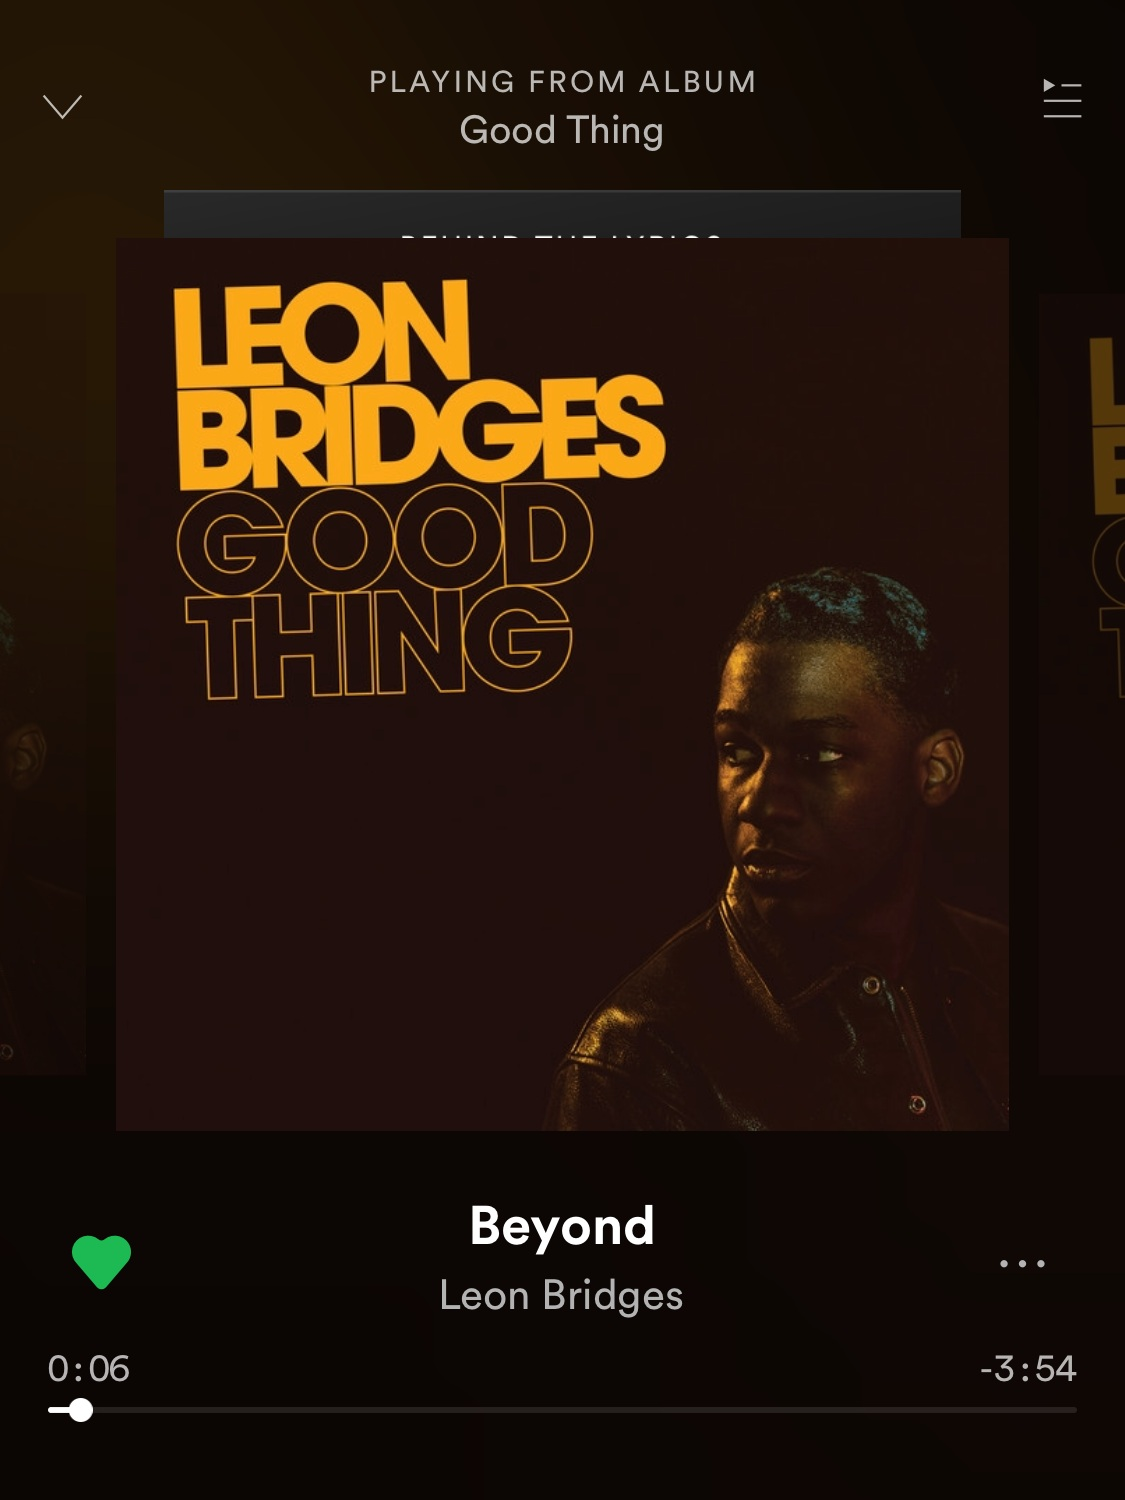 - Good Thing by Leon Bridges was one of my top played album of 2018, so I definitely need to include this here. So many good songs. Beyond was my most played song off the album.